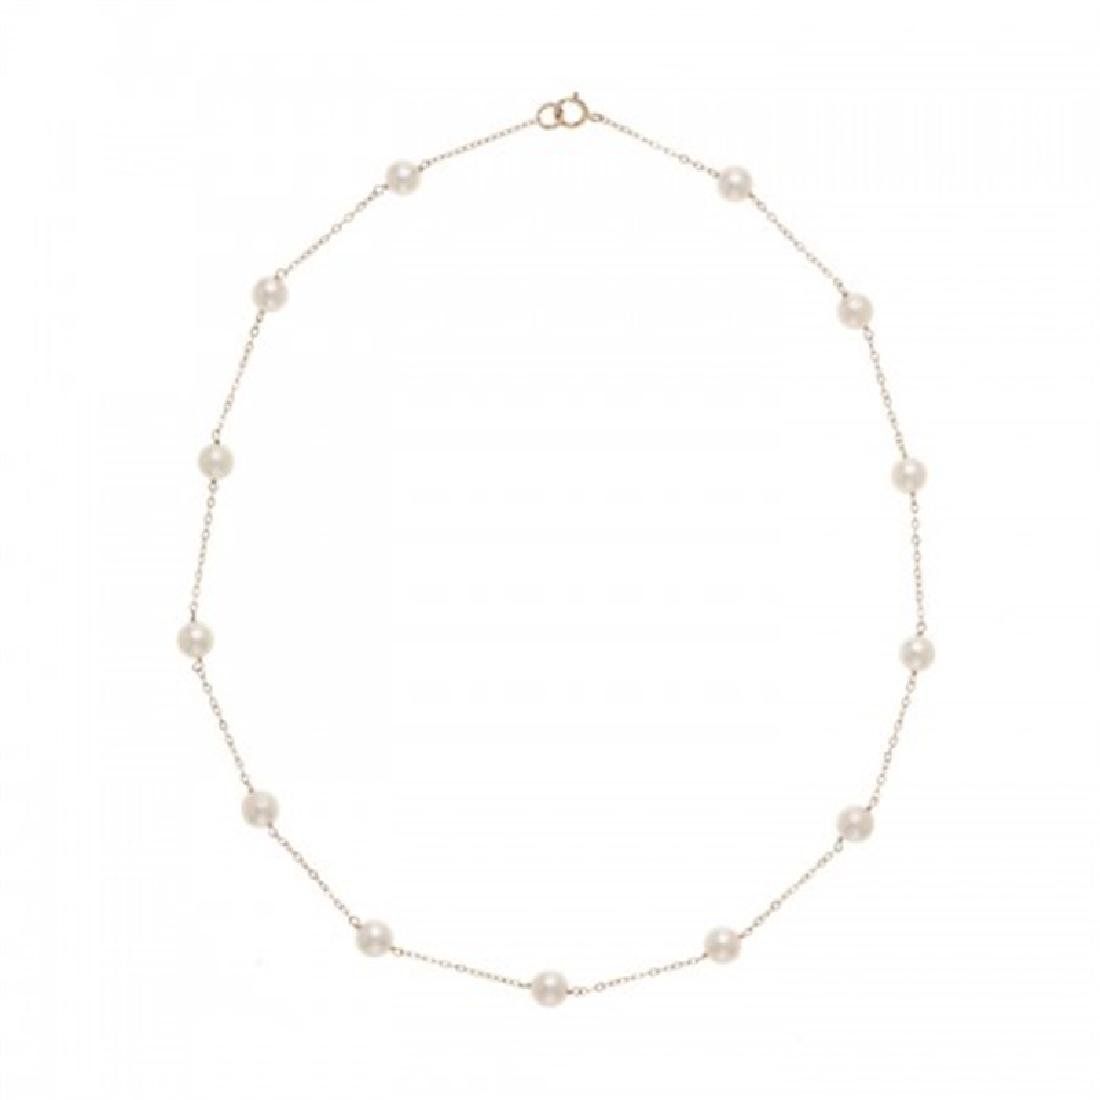 6.0-6.5mm Japanese Akoya Tin Cup Pearl Necklace